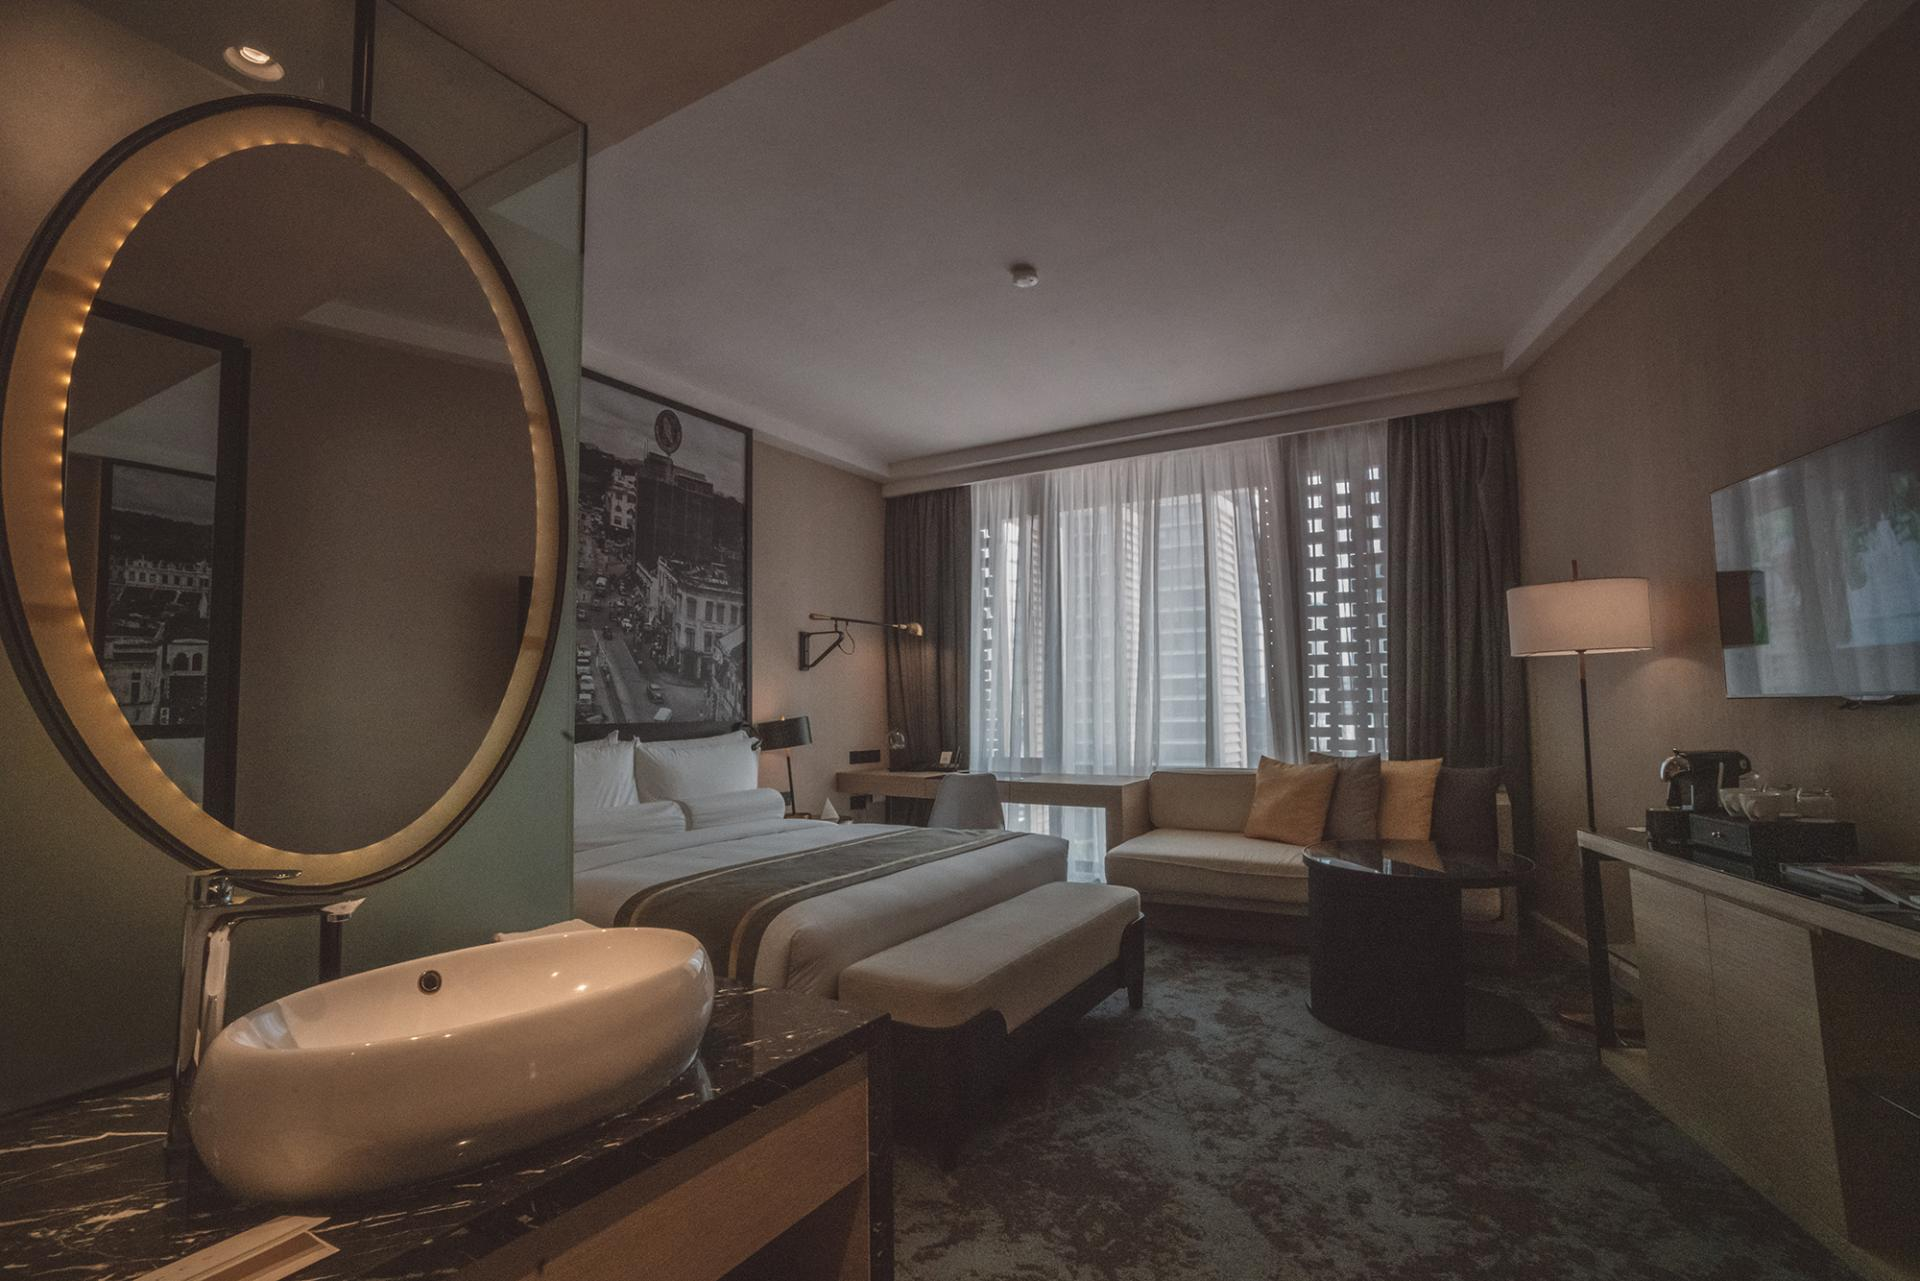 Complete review of Hotel Stripes Kuala Lumpur.